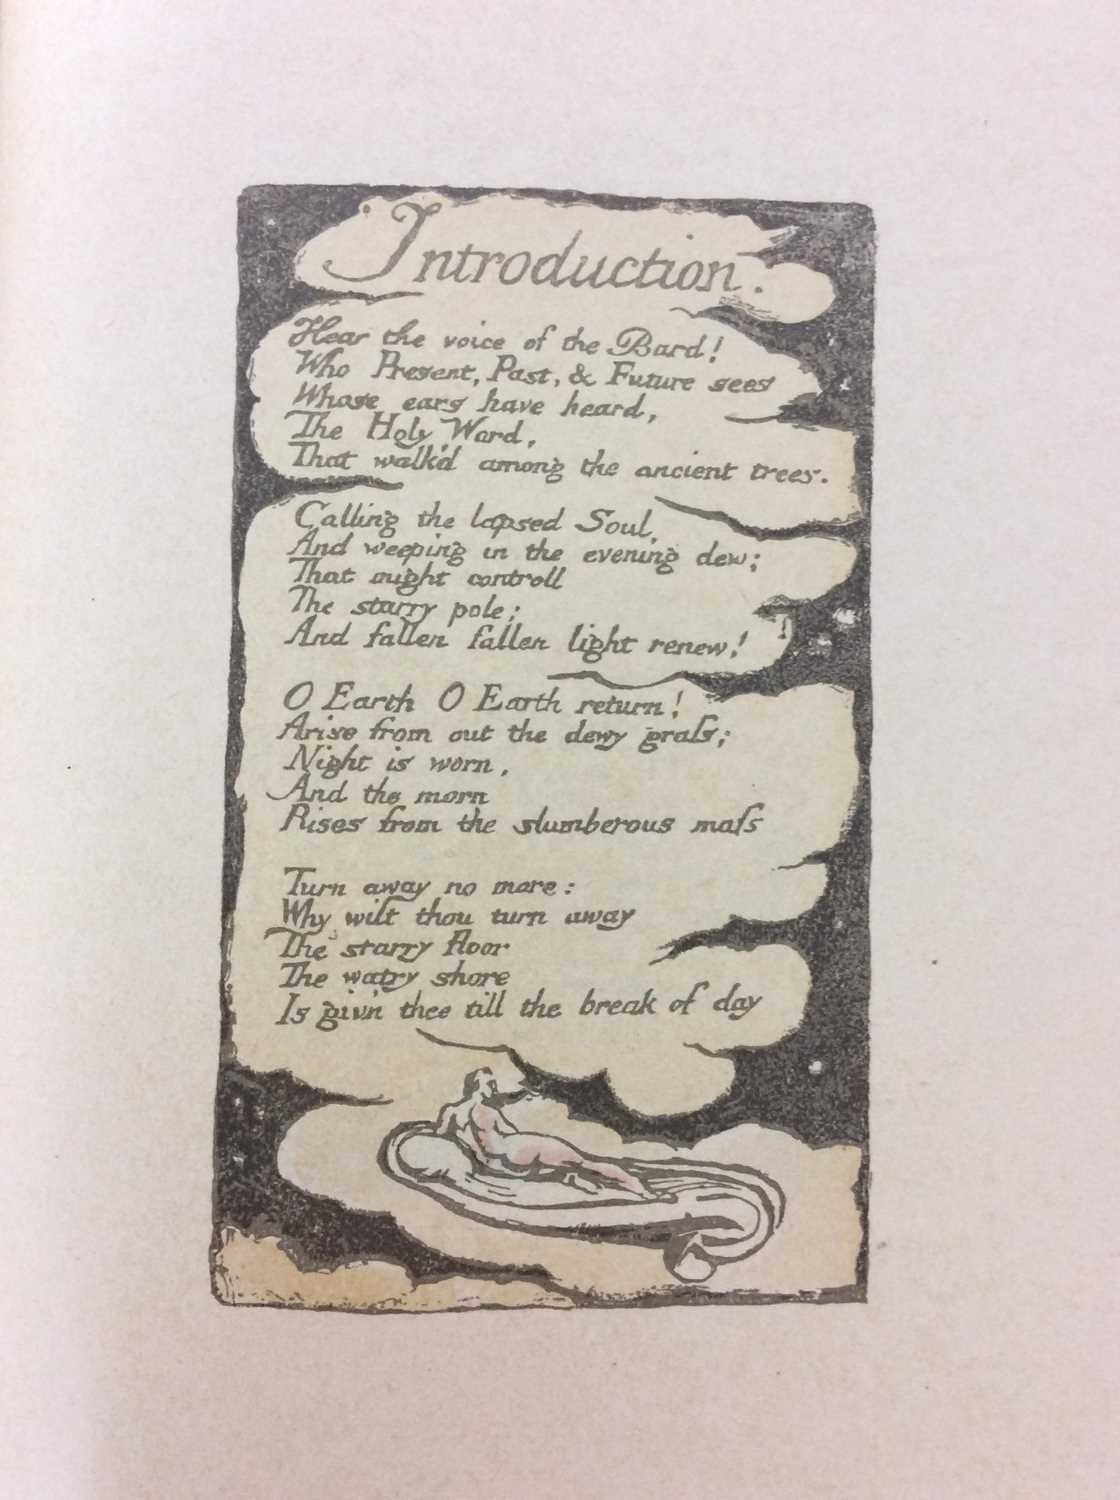 William Blake - Songs of Experience, Songs of Innocence, together with Mr Kilburn's Calicos - Image 4 of 15